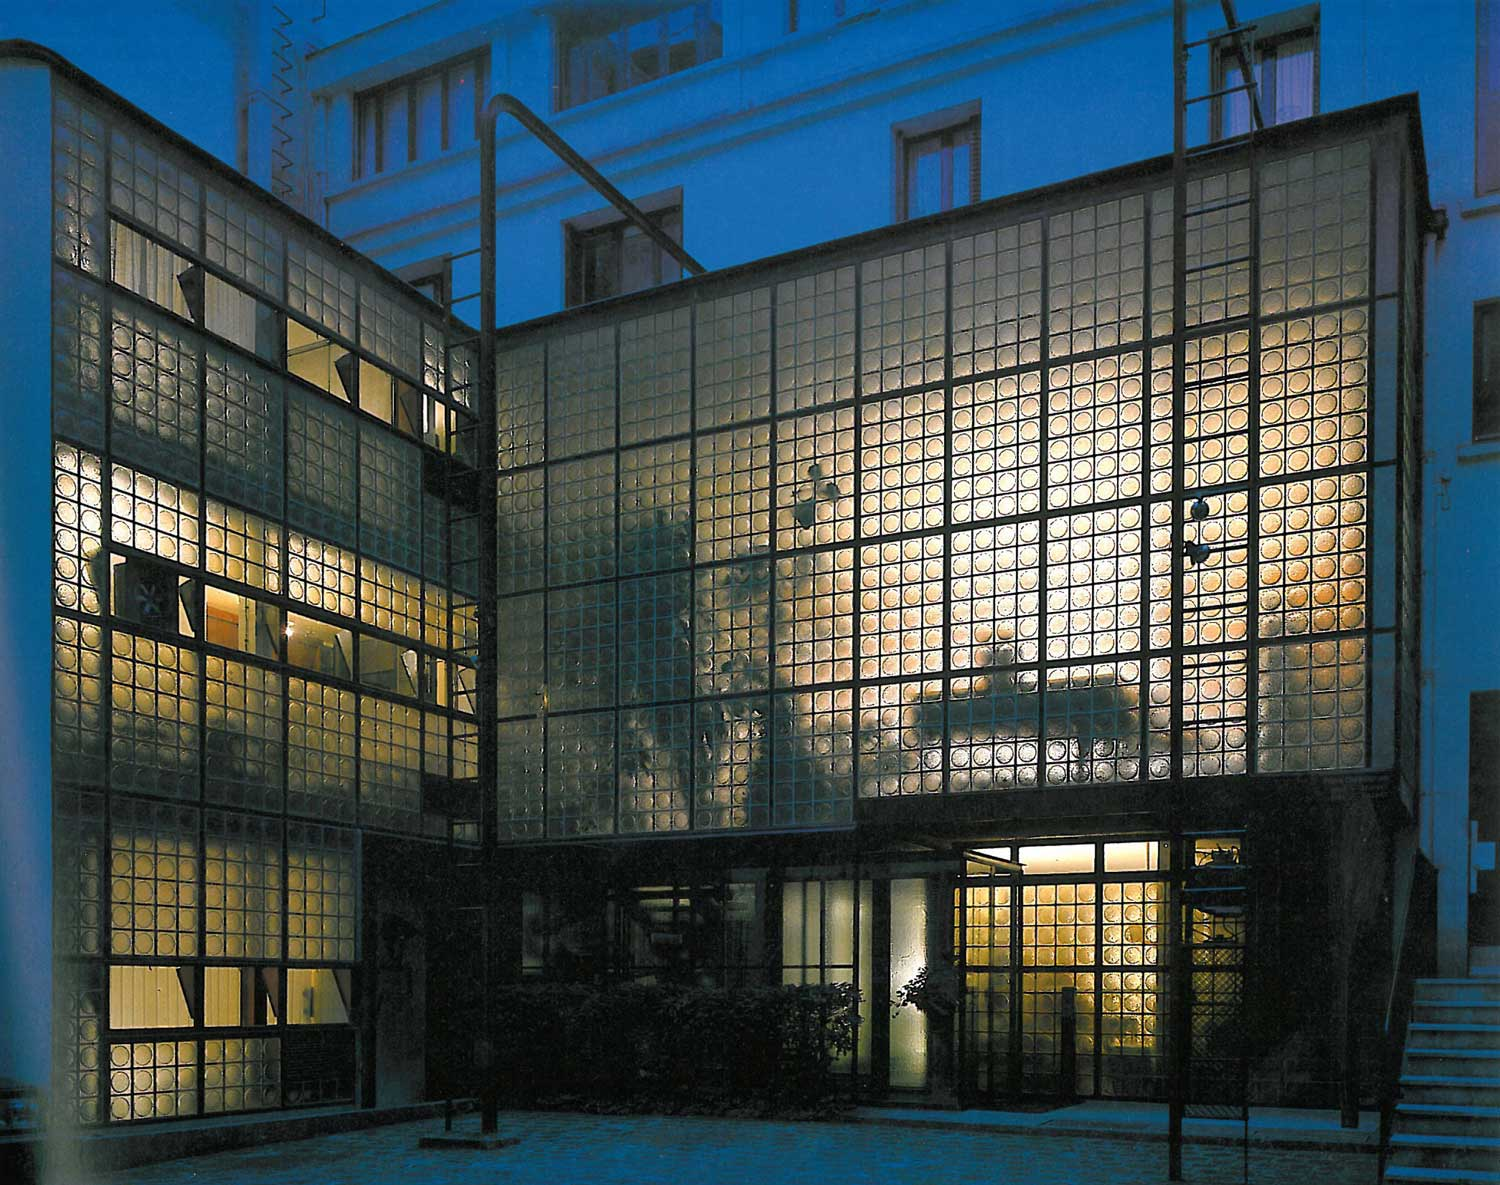 Verre The Maison De Verre Paris By Pierre Chareau Bernard Bijvoet